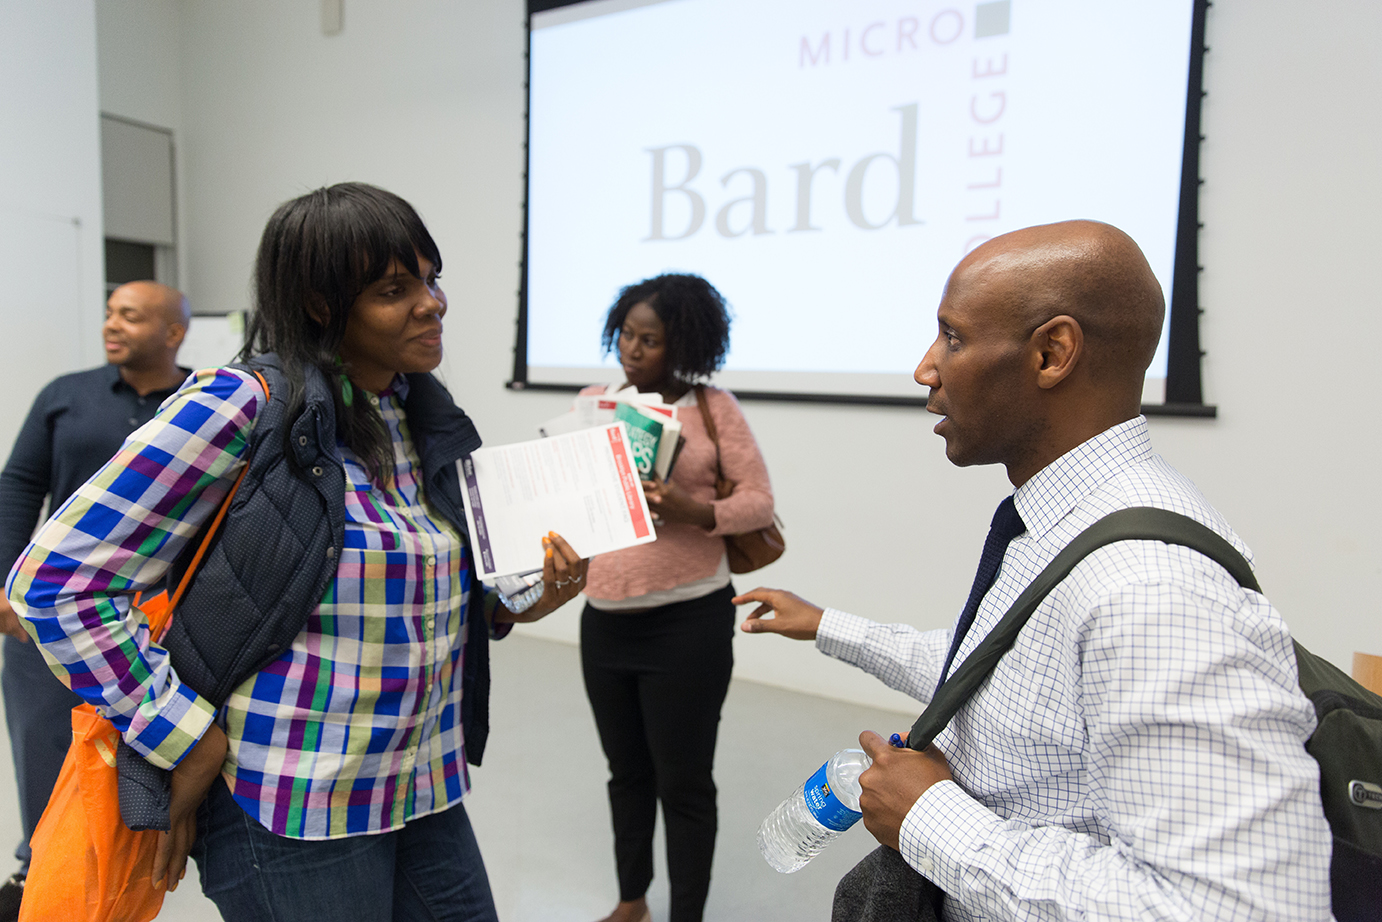 Female with papers talking to a man with a backpack on, with the Bard Microcollege logo projected onto a screen in the background.